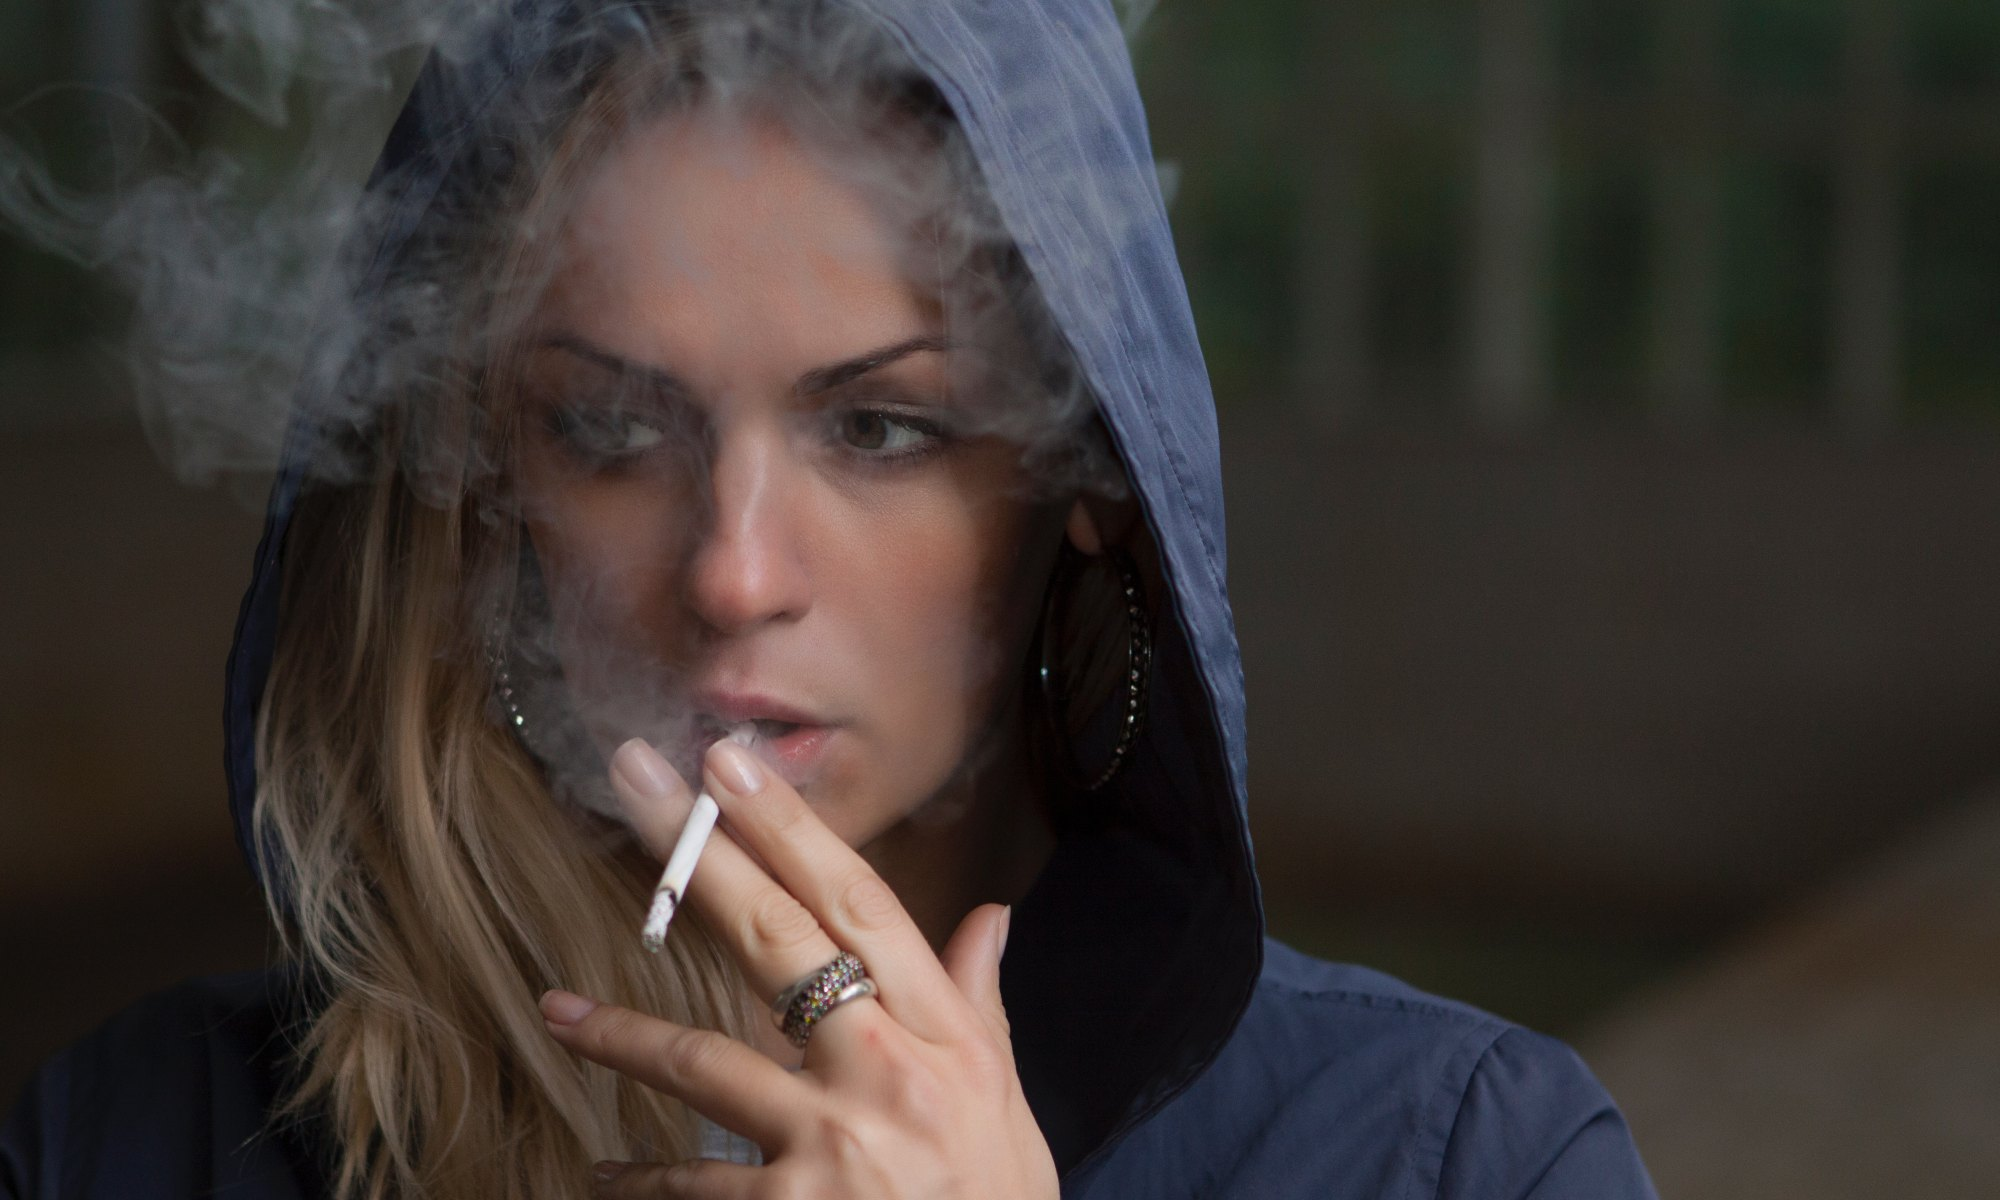 Addicted blonde woman wearing blue hoodie and smoking a cigarette